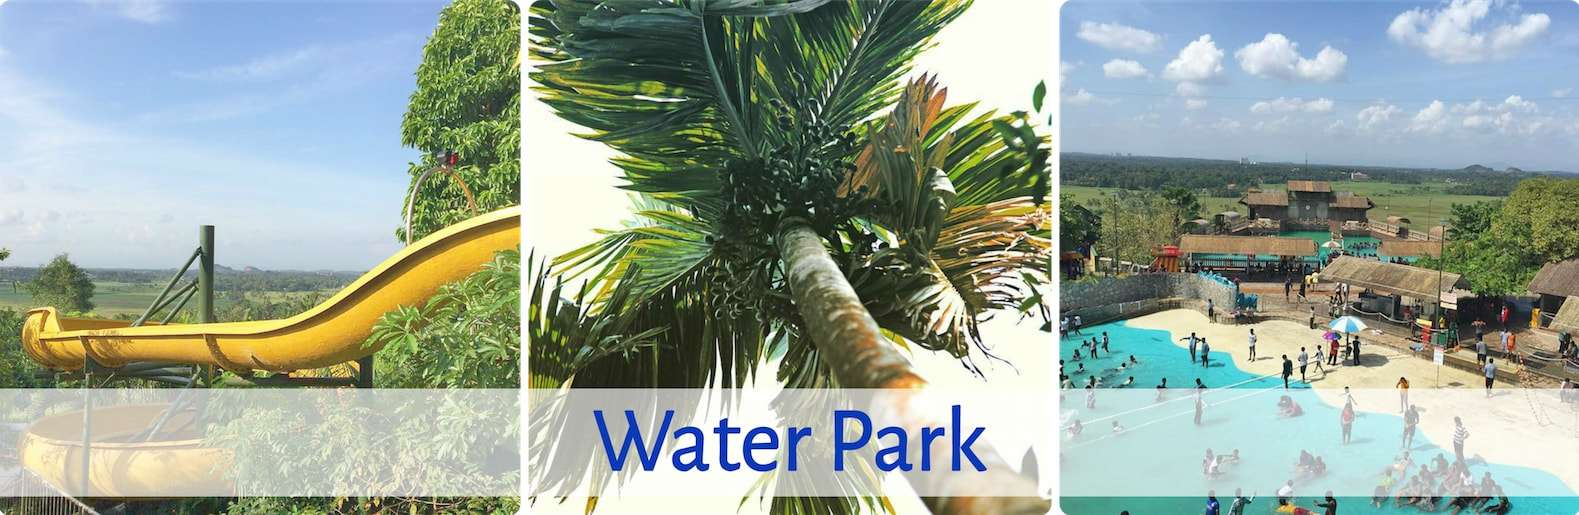 Water-Park-of-Wonderla.jpg